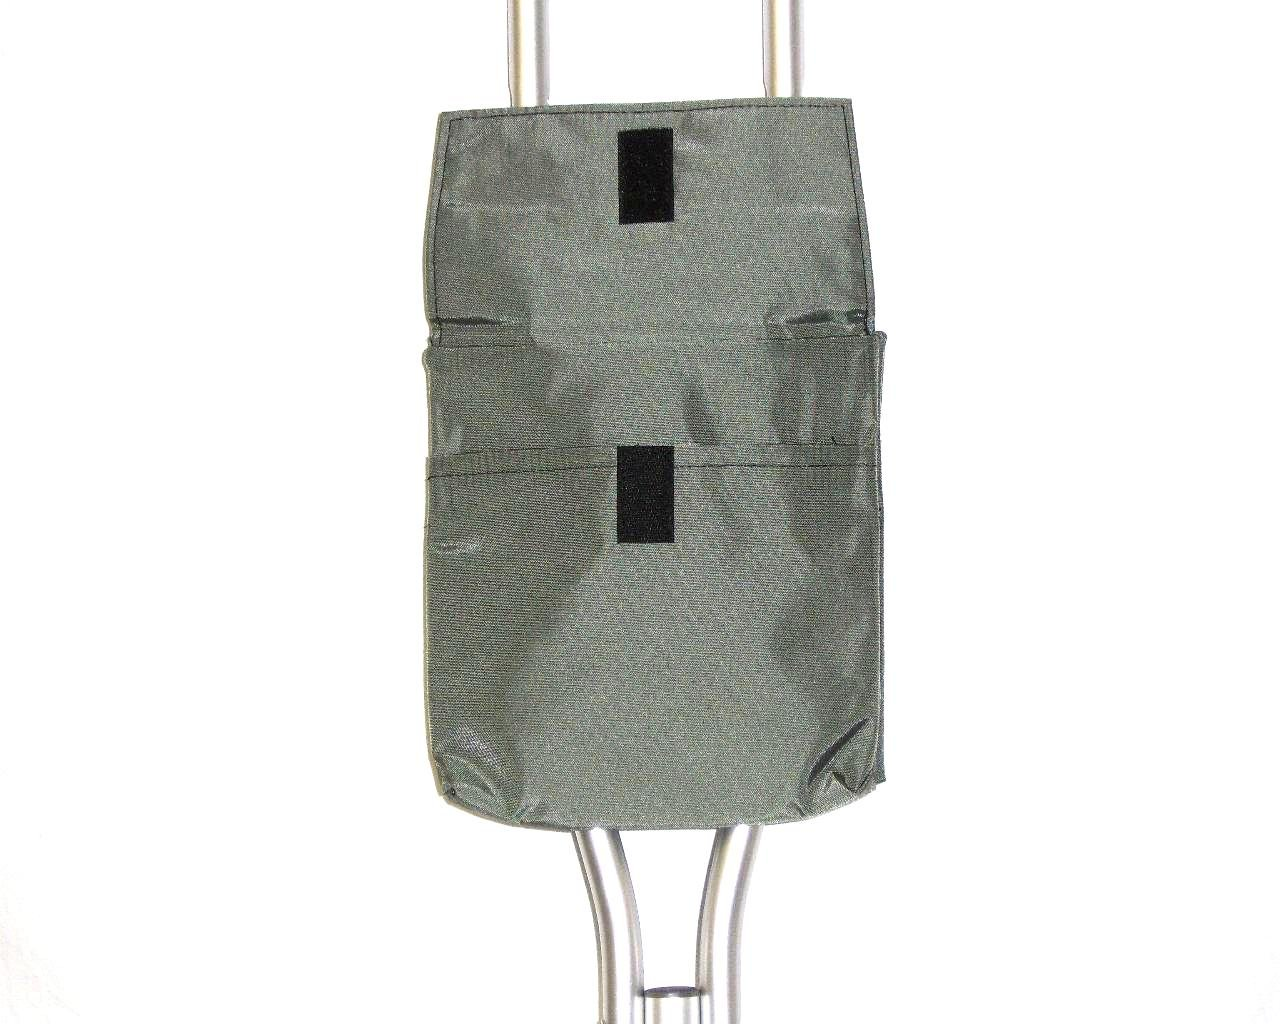 Handi Pockets 1a5ch Storage Accessory Crutch, Nylon, Charcoal Gray with Flap